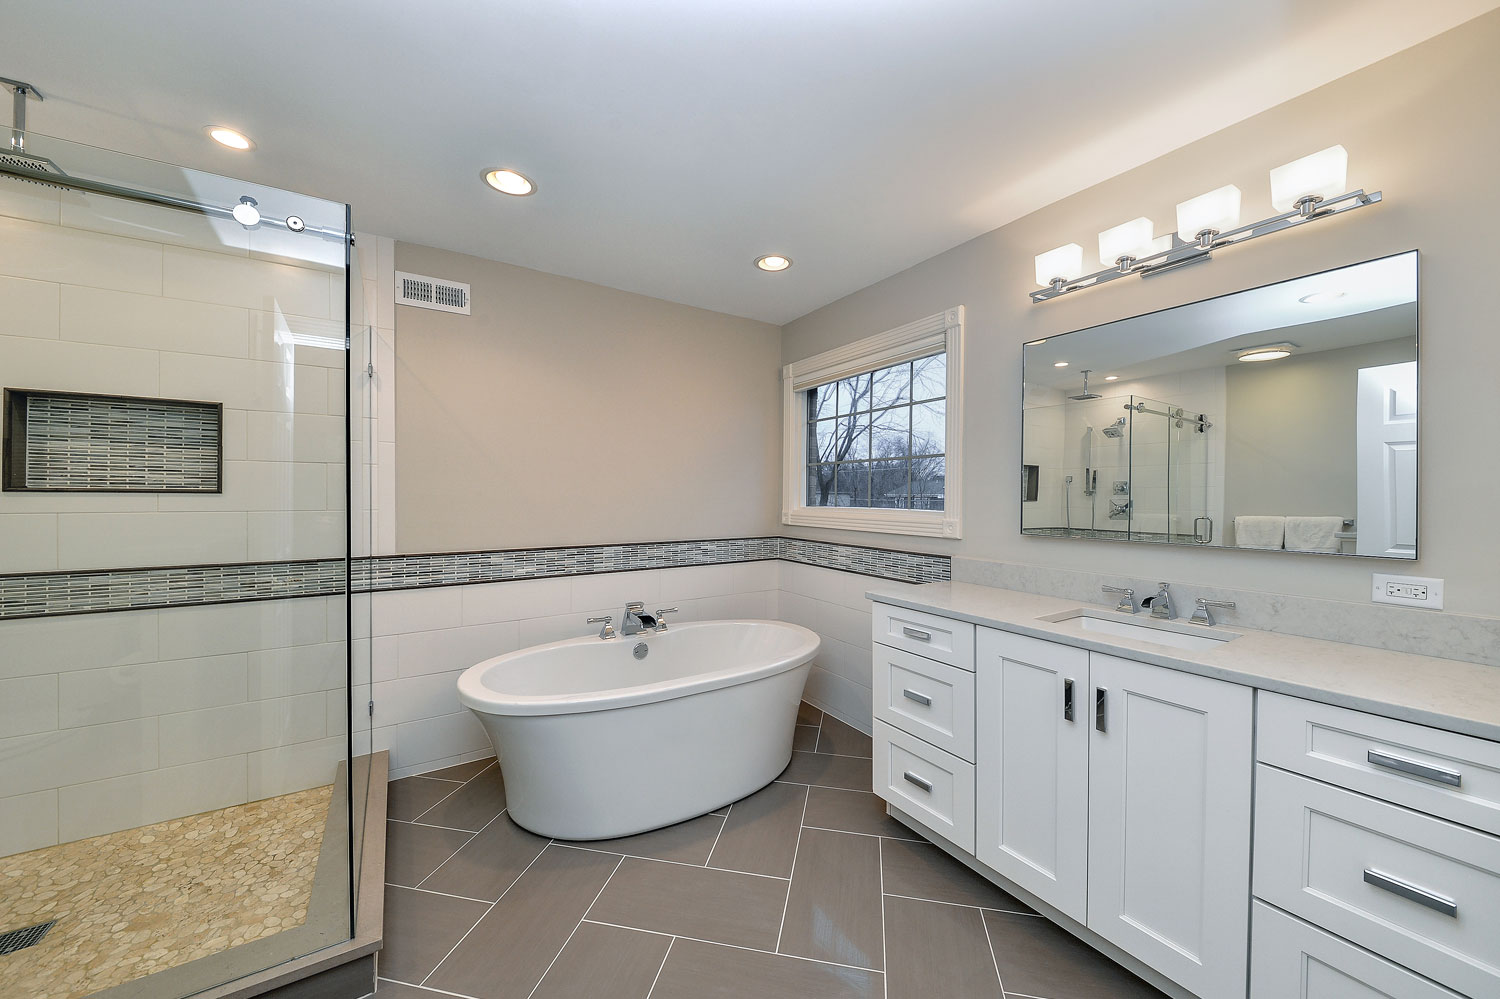 Greg julie 39 s master bathroom remodel pictures home for Bathroom remodel picture gallery